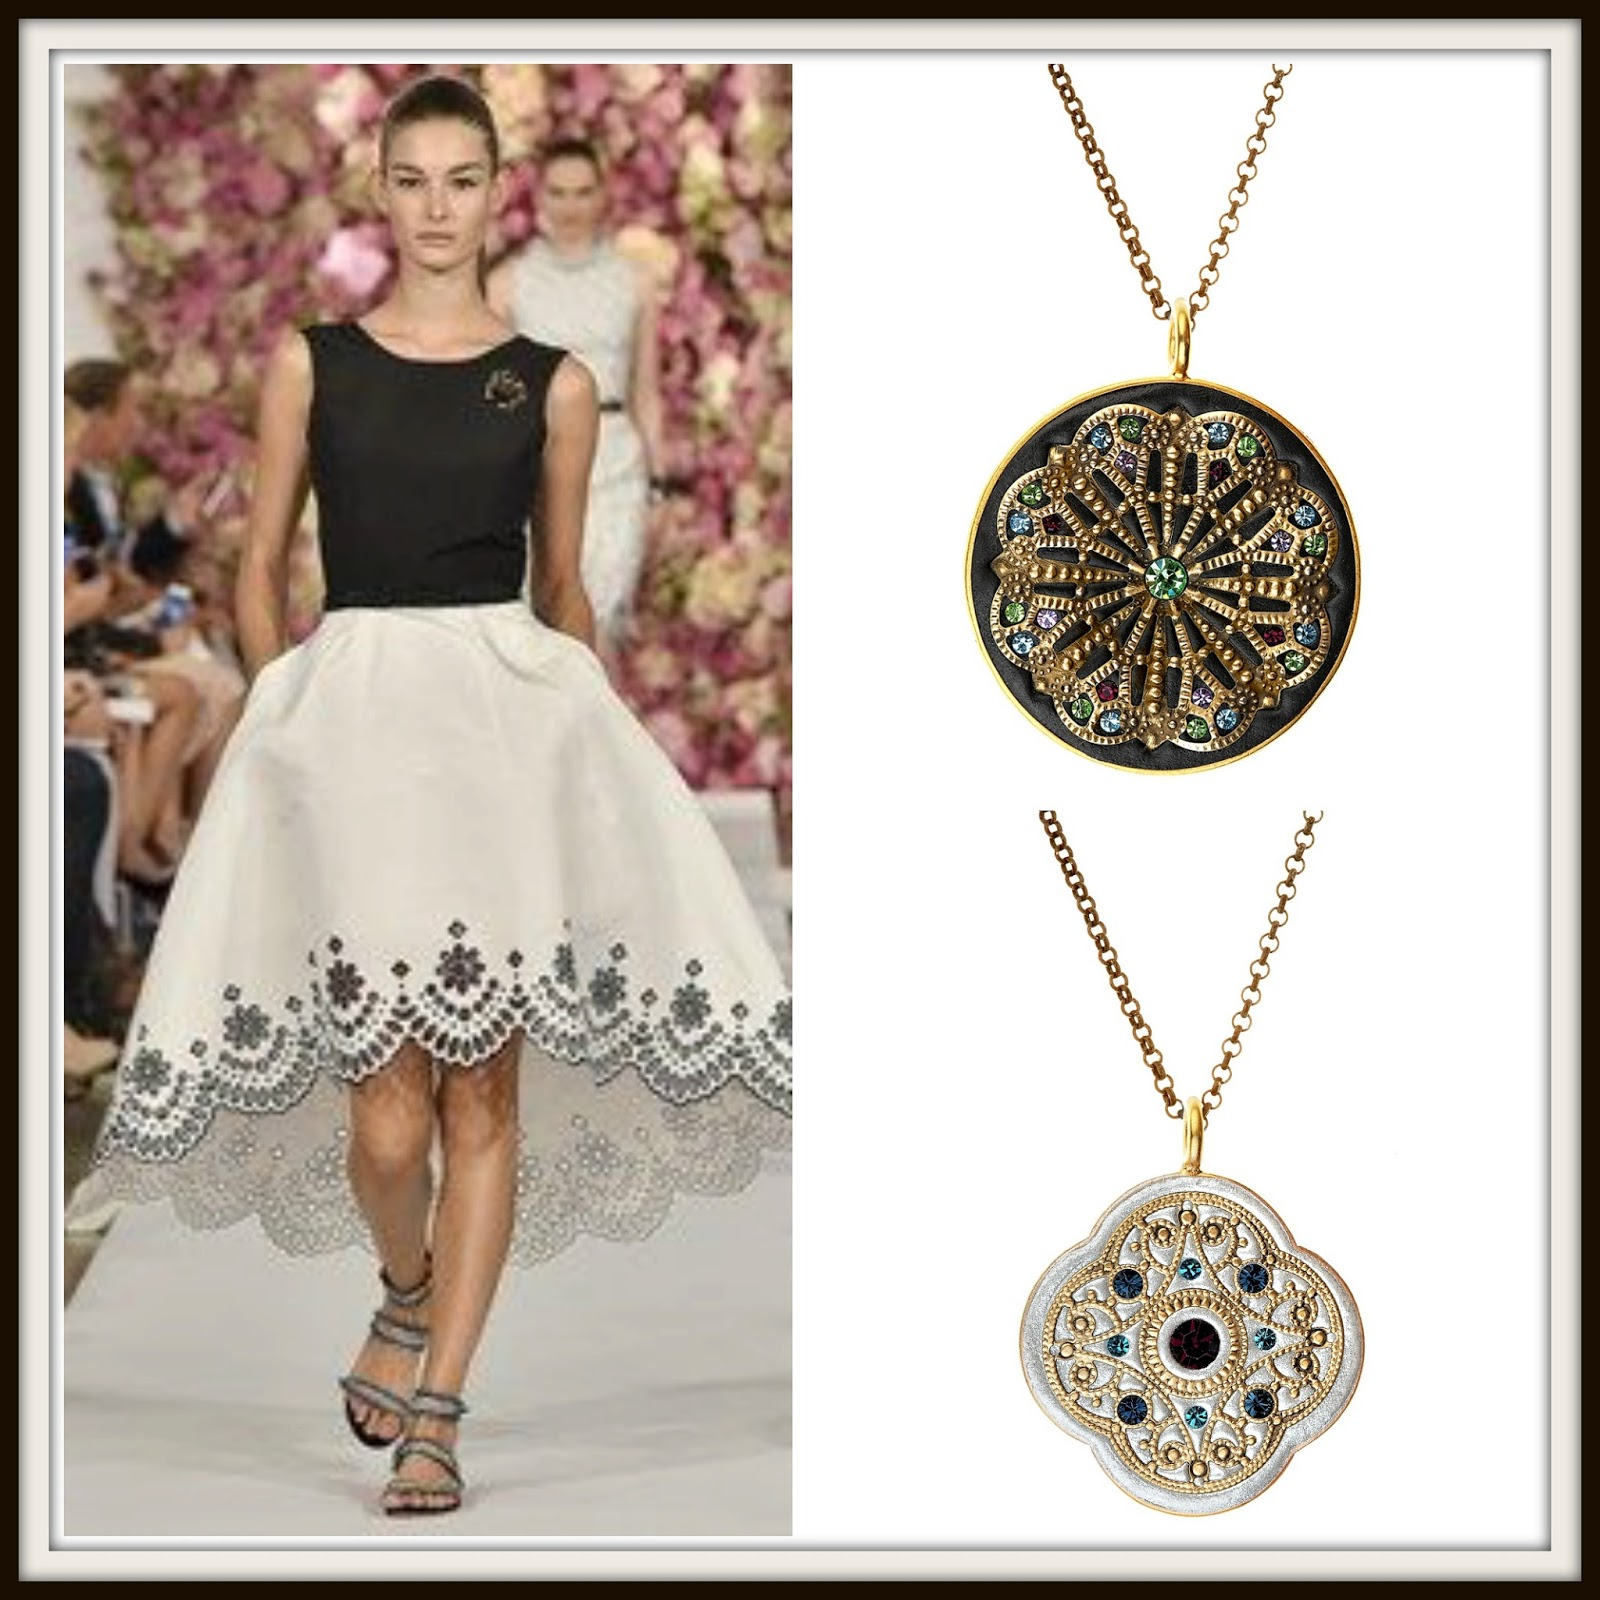 LFW2015, NYFW2015, Oscar de la Renta, black, white, monochrome, black jewelry, white jewelry, statement pendants